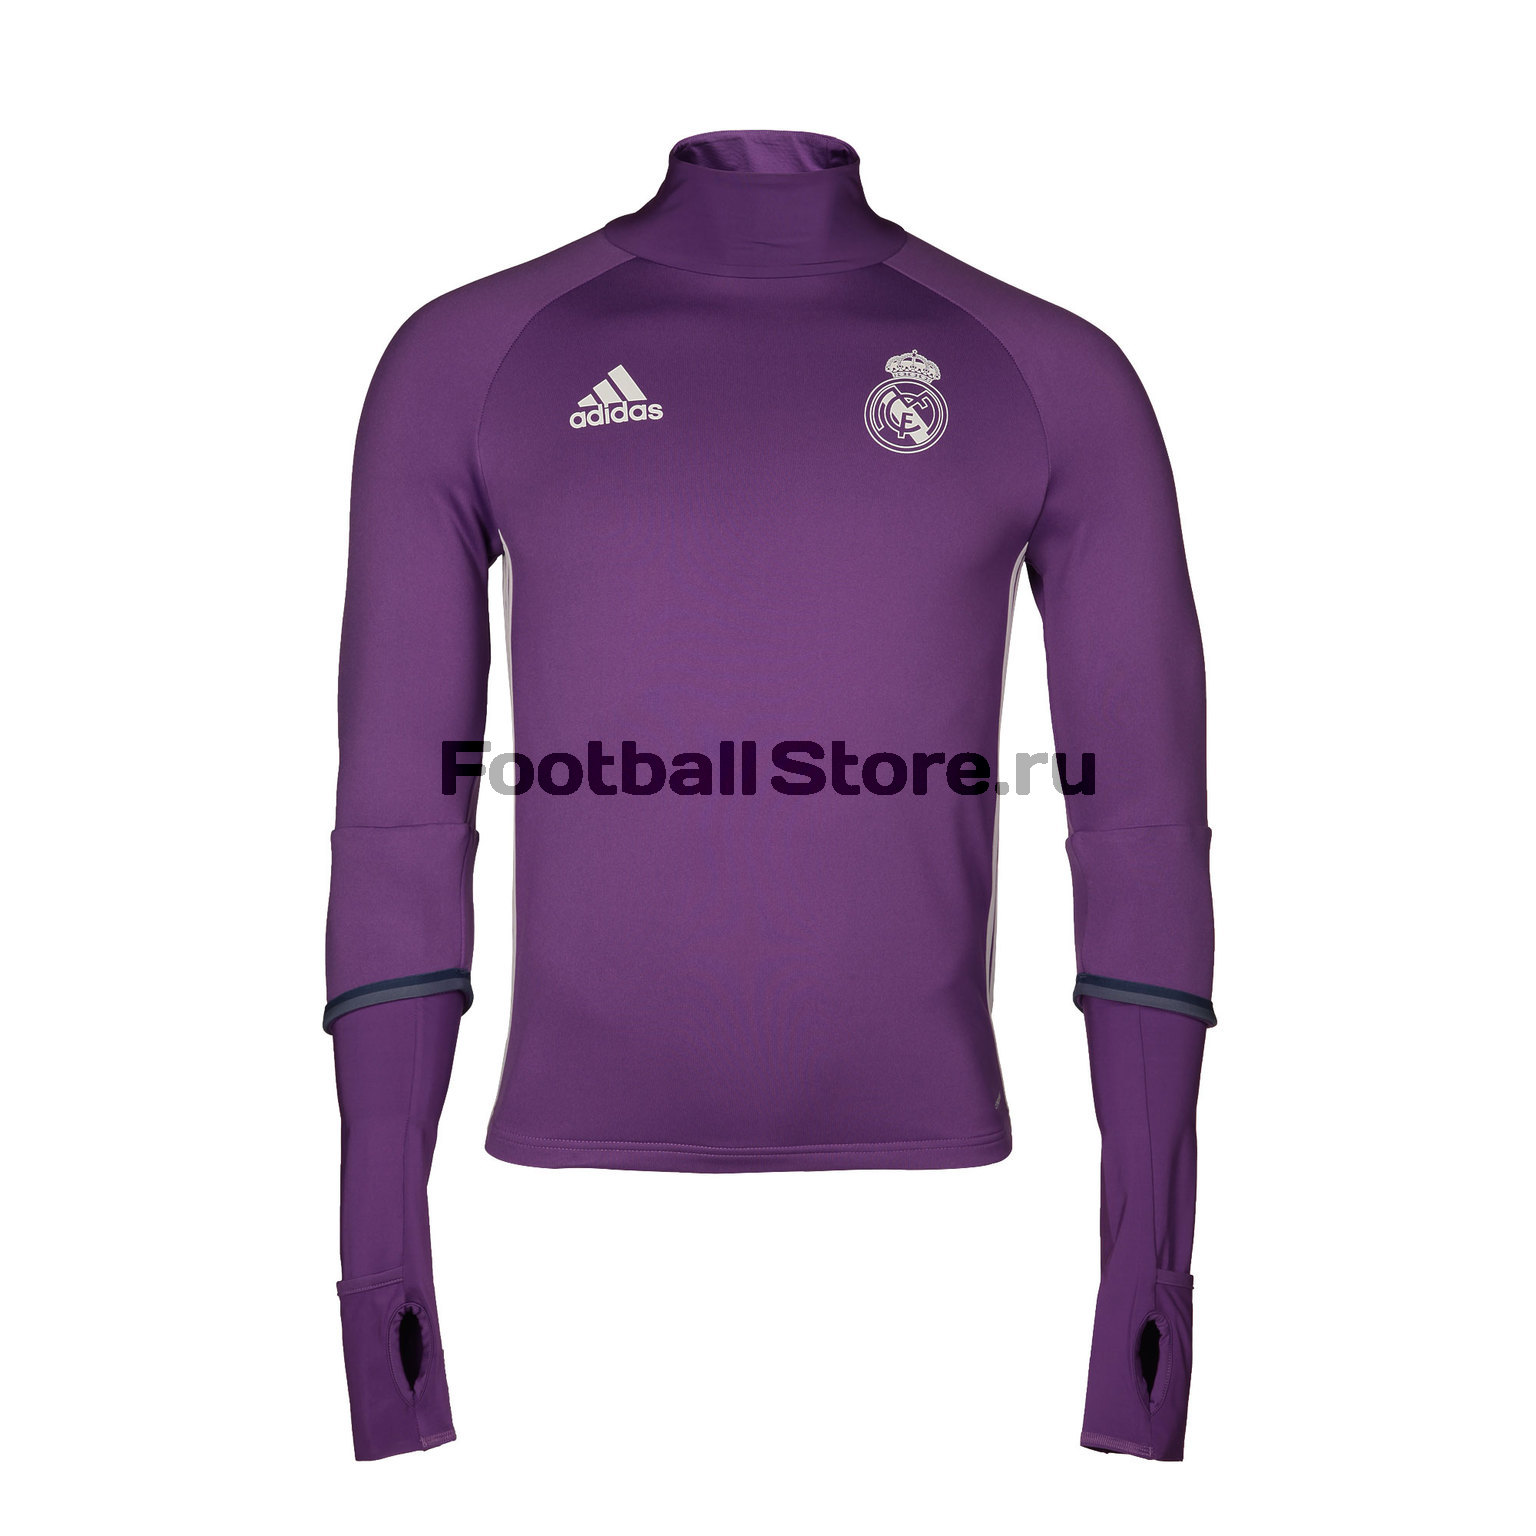 Real Madrid Adidas Свитер тренировочный Adidas Real Madrid TRG TOP AO3131 чип картриджа balson lexmark x 850 x 852 x 854 30k x850h21g chip for lexmark x850 852 854